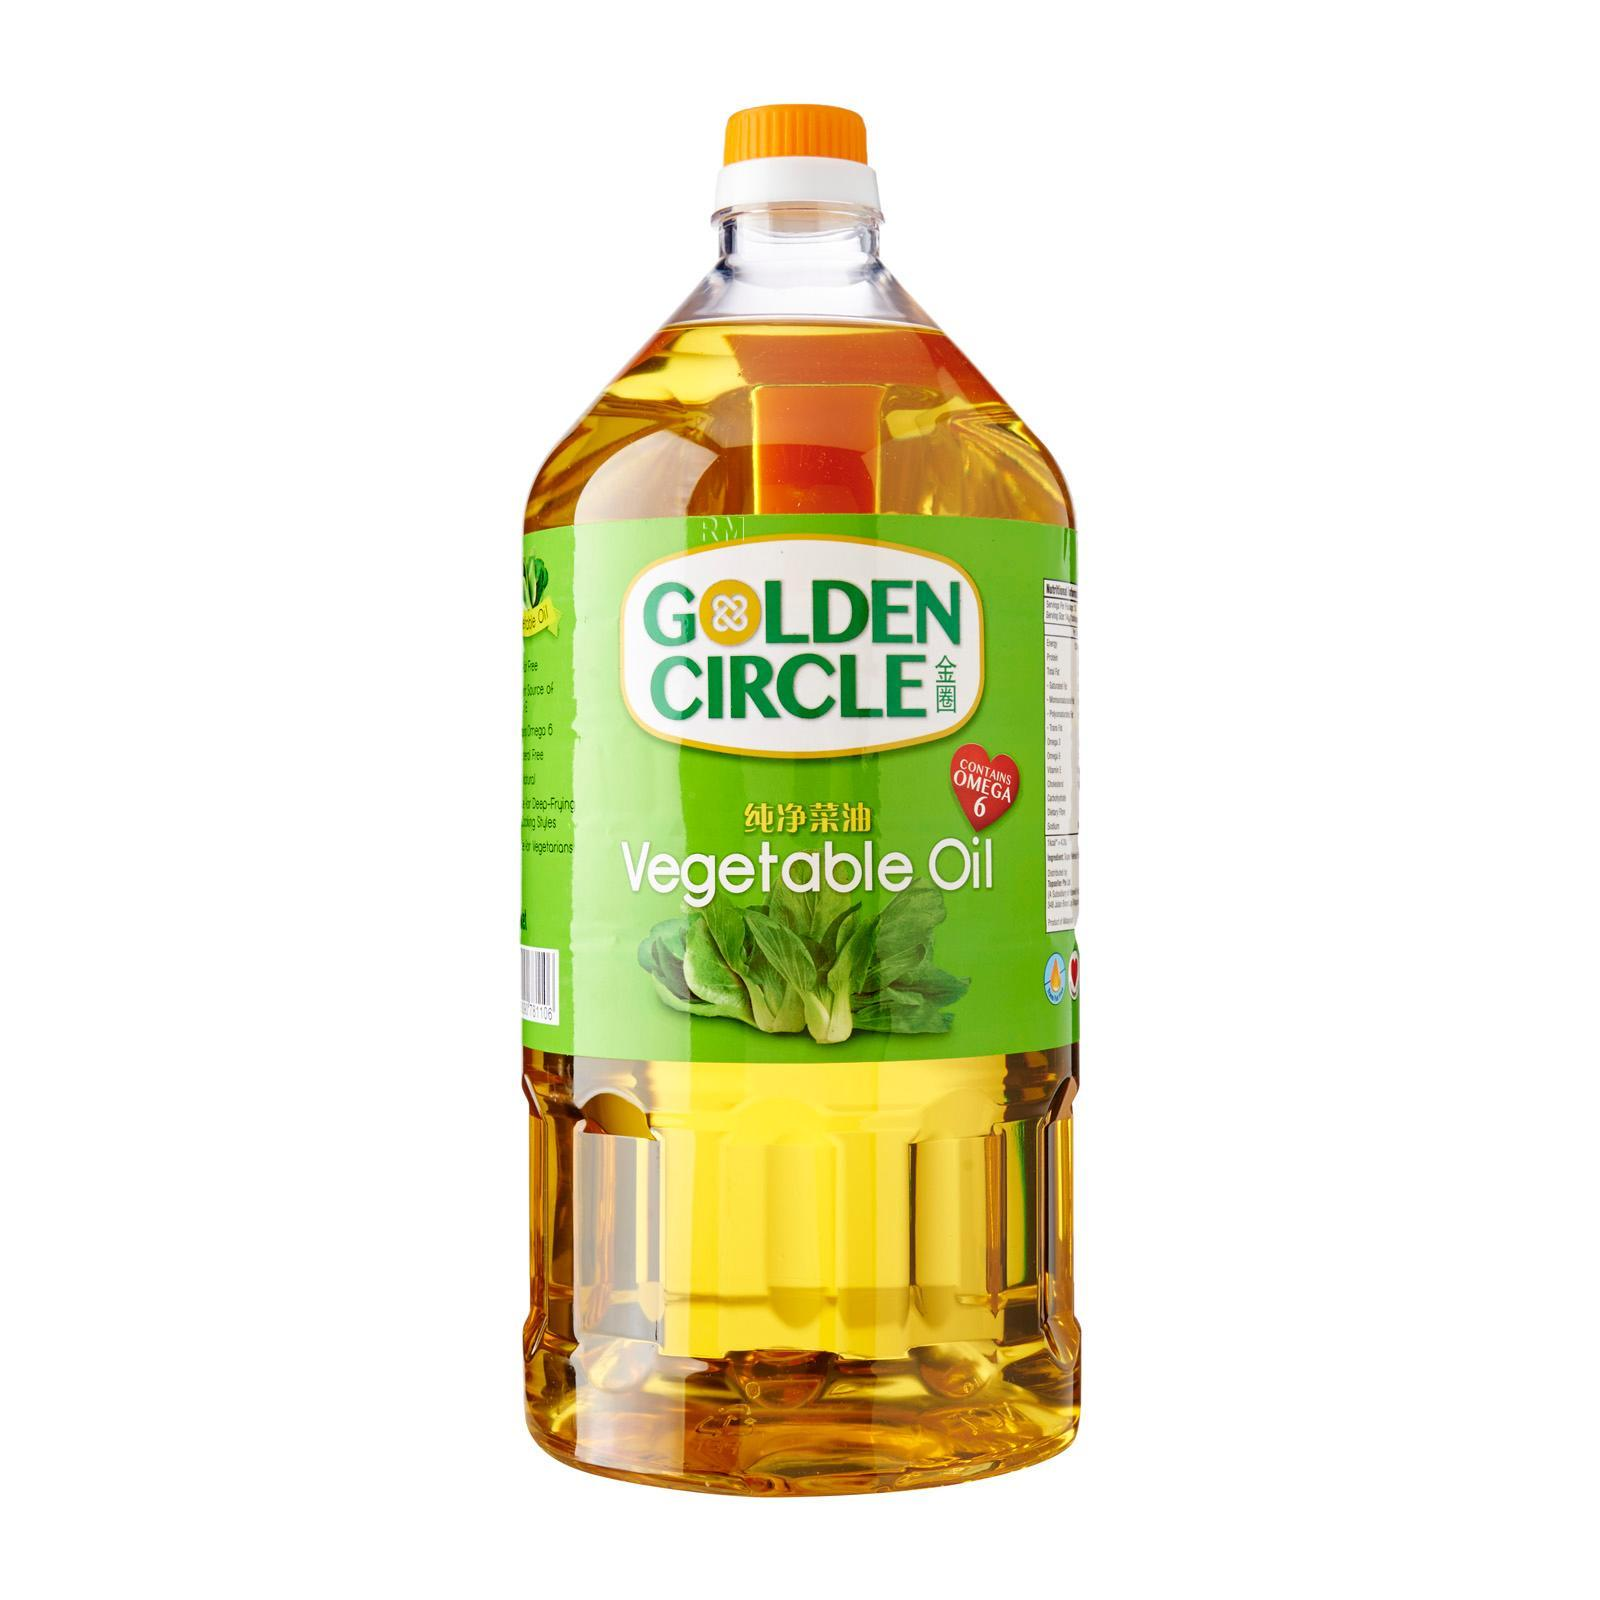 Golden Circle 100 - Percent Pure Vegetable Oil By Redmart.